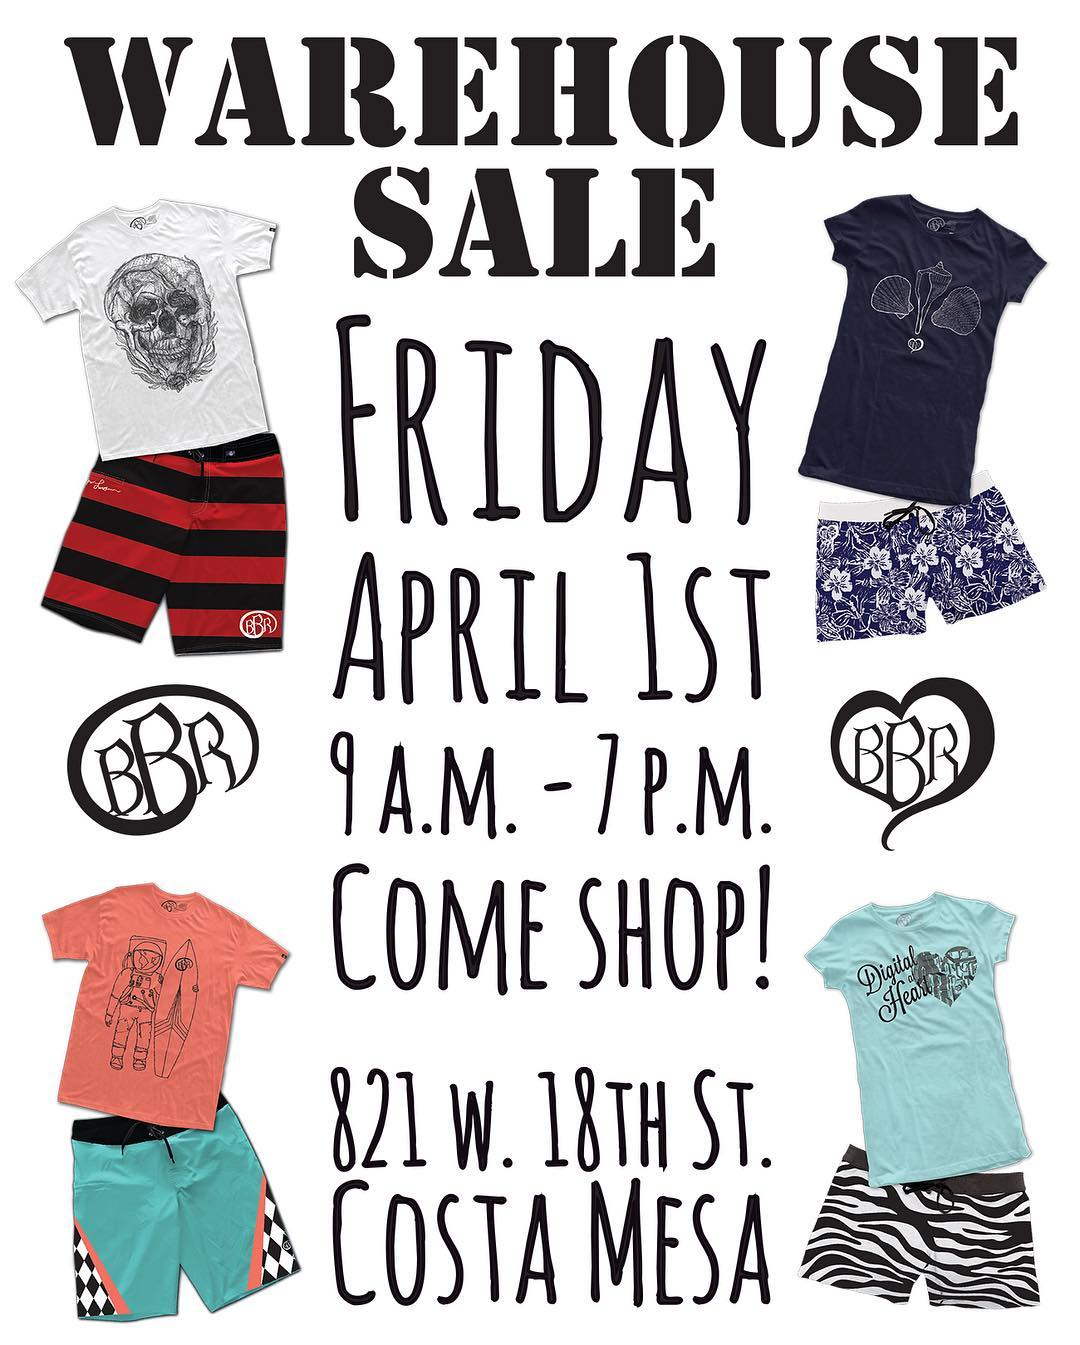 FRIDAY APRIL 1st from 9:00 am - 7:00 pm Warehouse/Sample Sale at Corporate Office: 821 W 18th Street Costa Mesa, CA 92627 http://www.bbrsurf.com  #bbr #bbrsurf #bbrsurfwear #buccaneerboardriders #warehousesale #samplesale #mens #womens #tshirts...